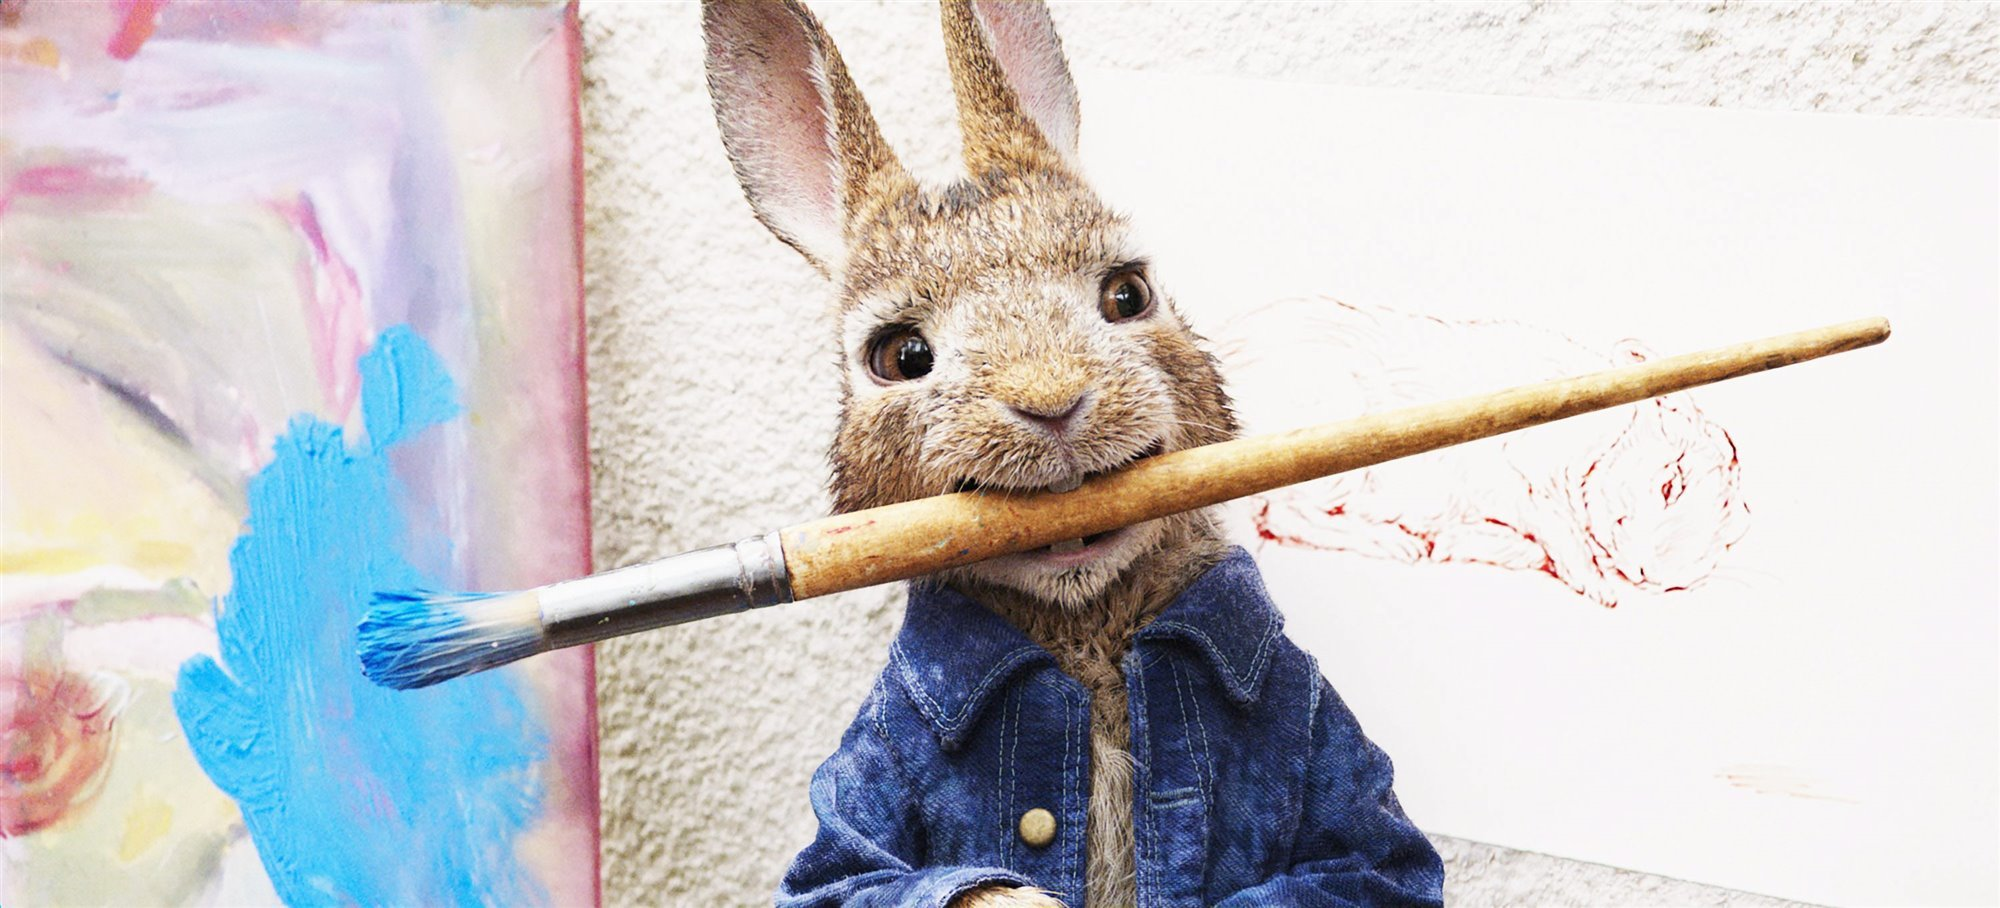 Beatrix Potter Rabbit. Peter Rabbit, un personaje inmportal